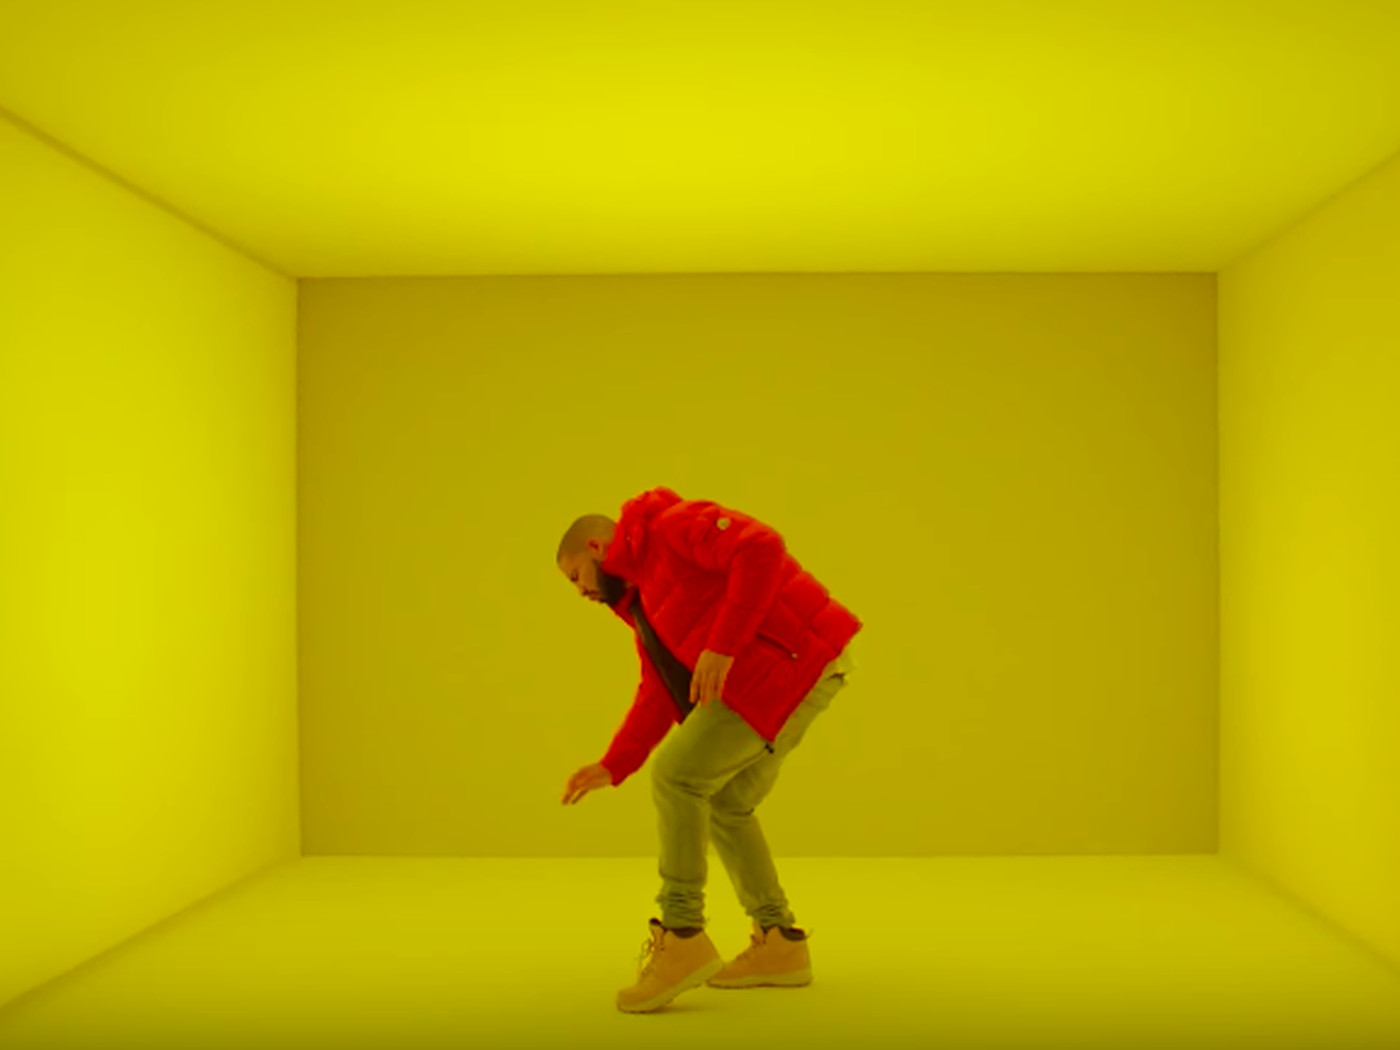 Drake Funny Dance Meme : The year of drake as told by the memes gifs and videos he